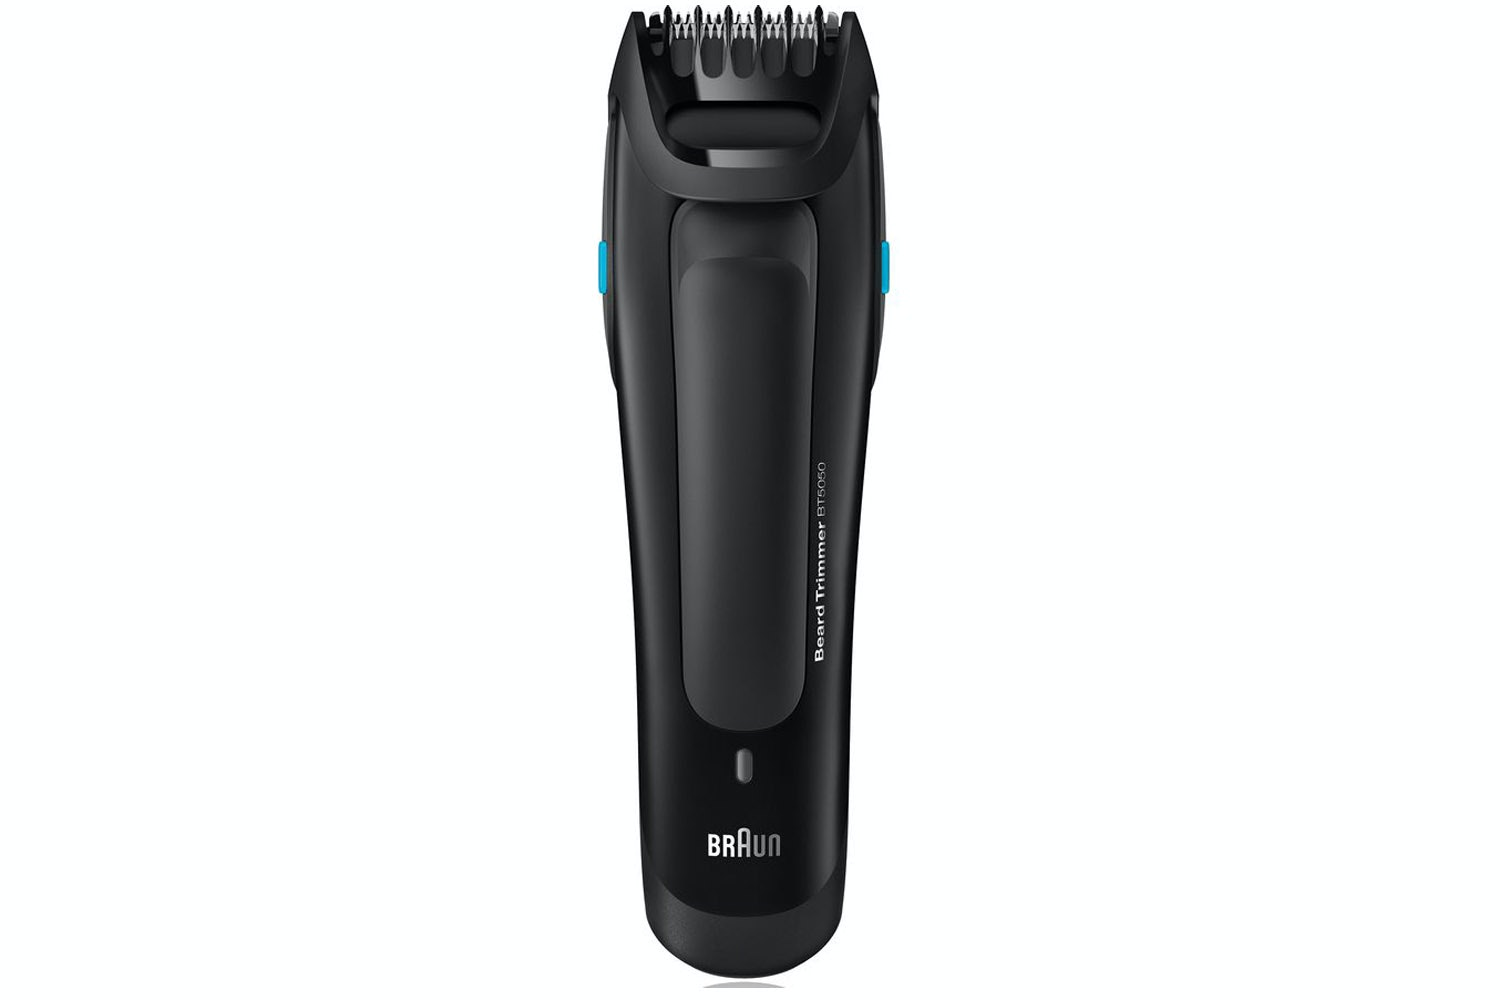 Braun Beard Trimmer | BT5050